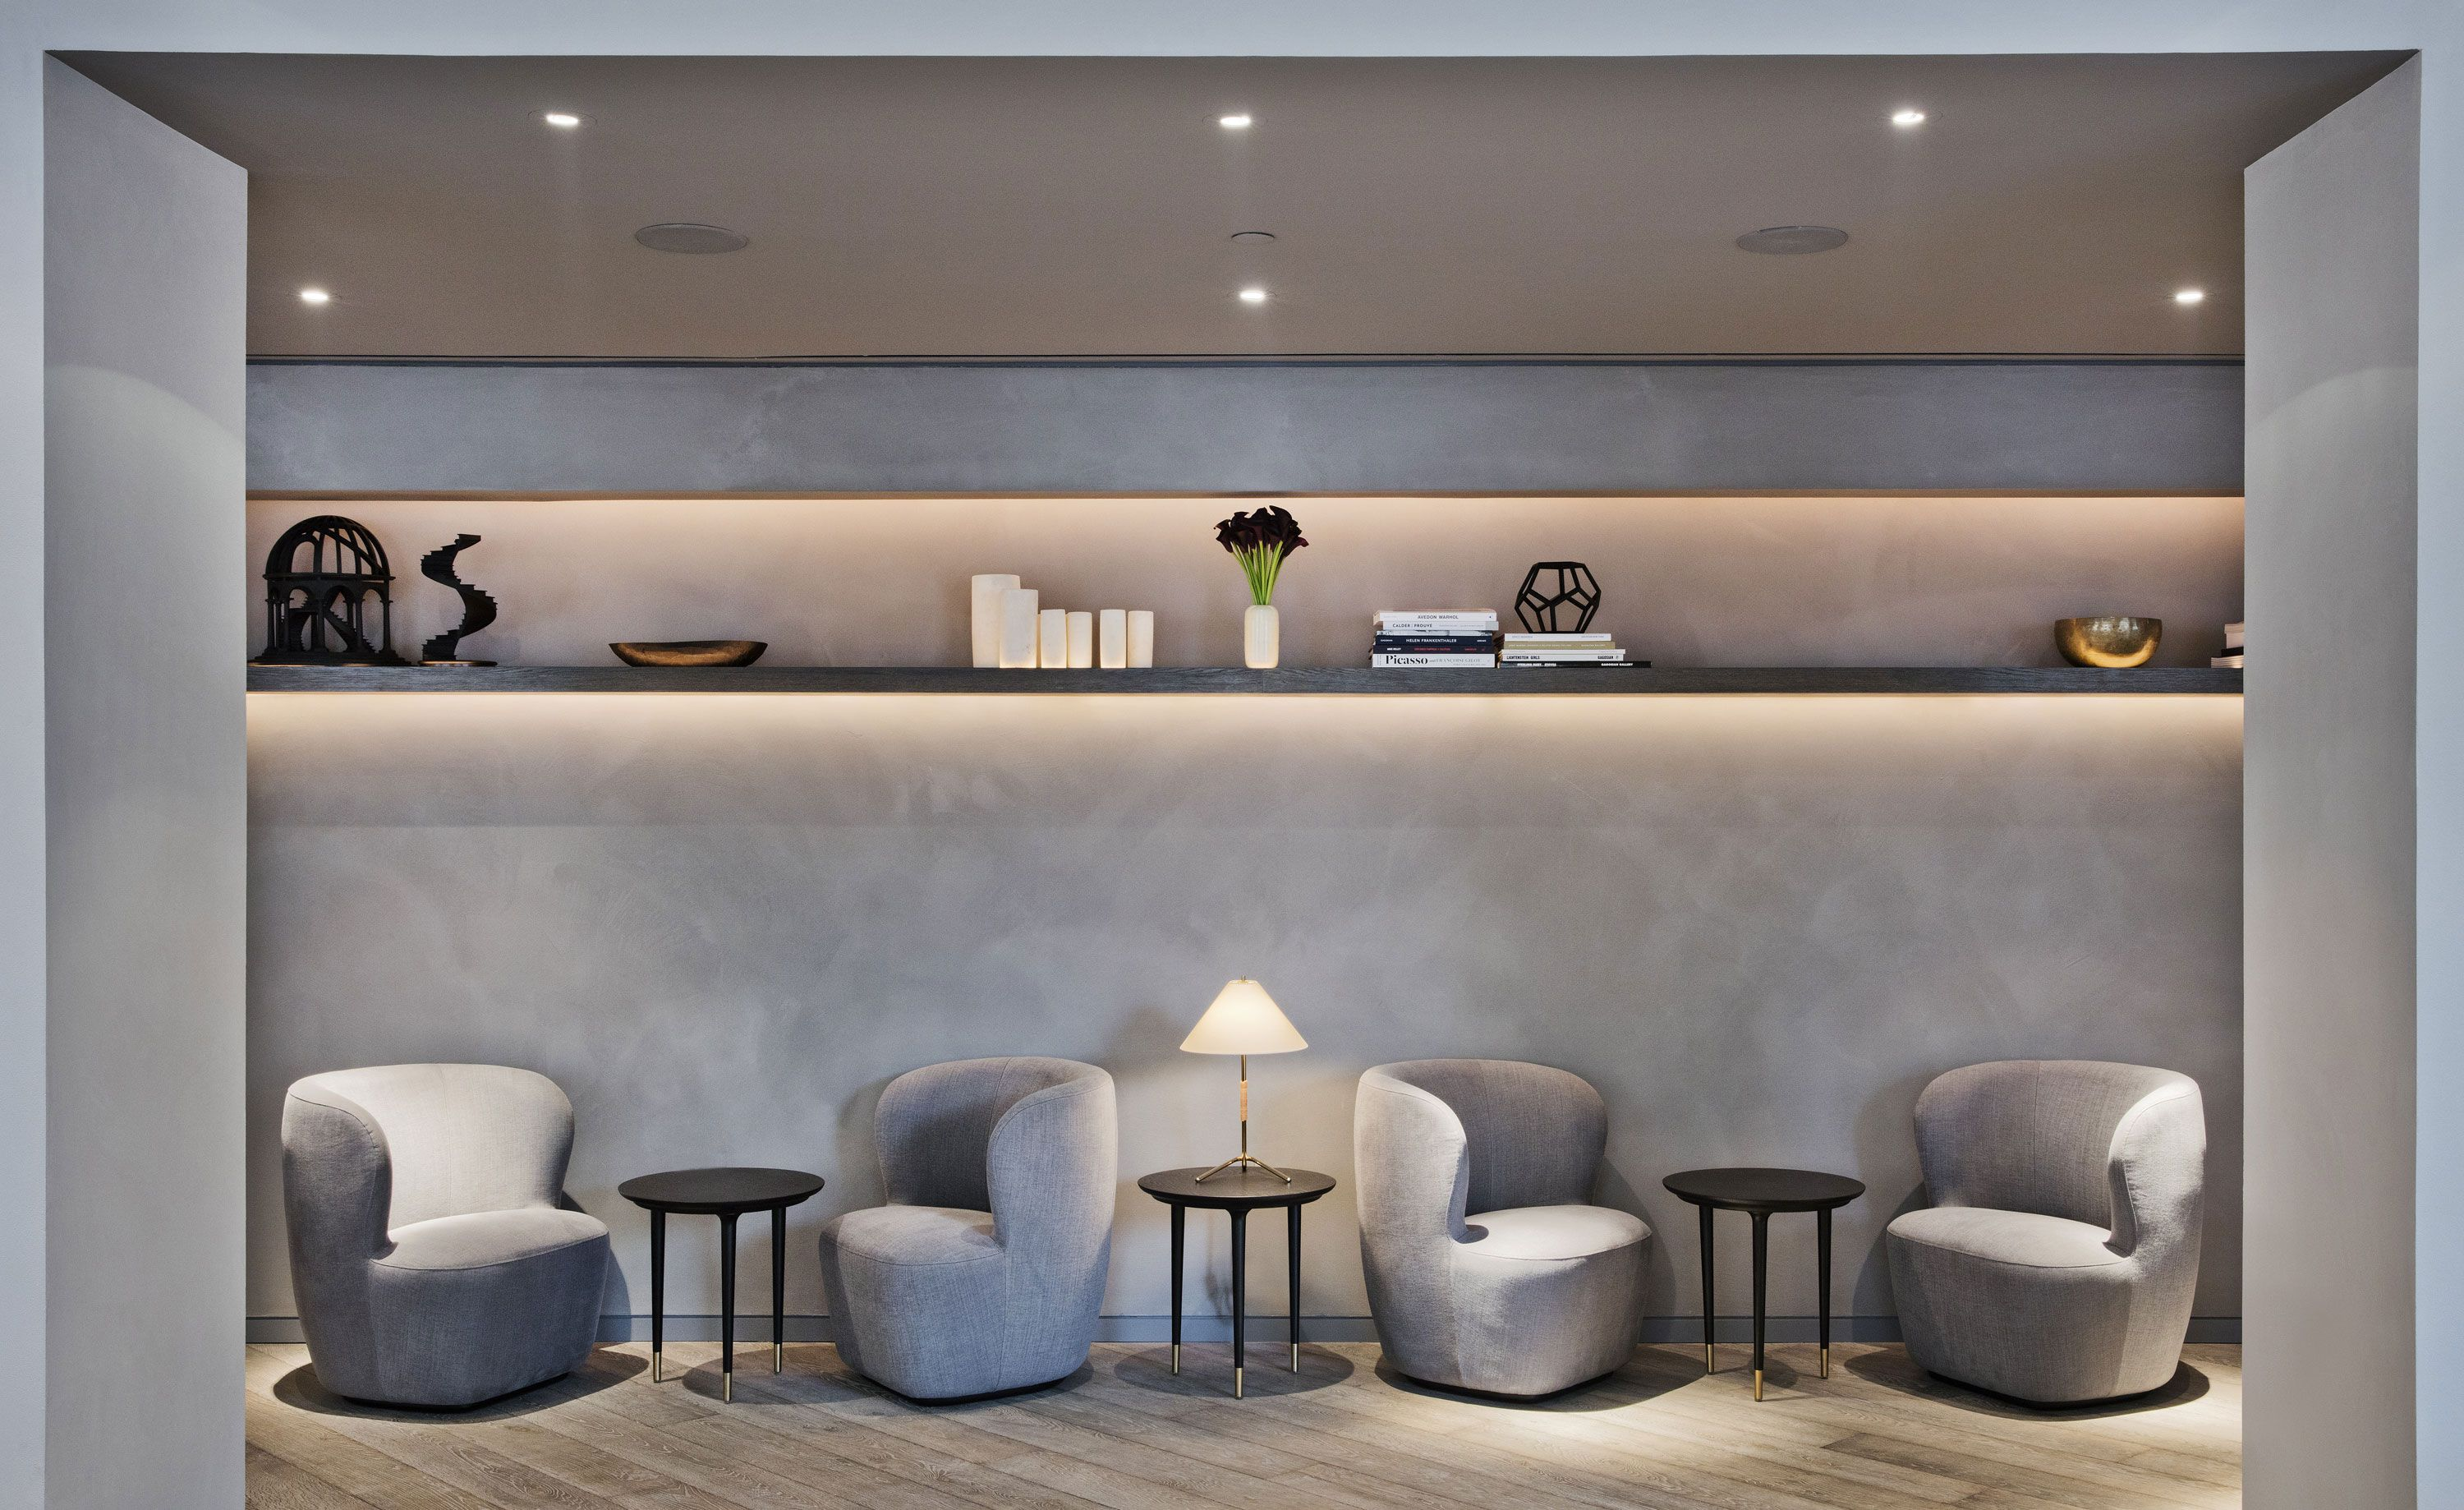 11 howard new york usa leading hotels design trends for Hotel lobby design trends